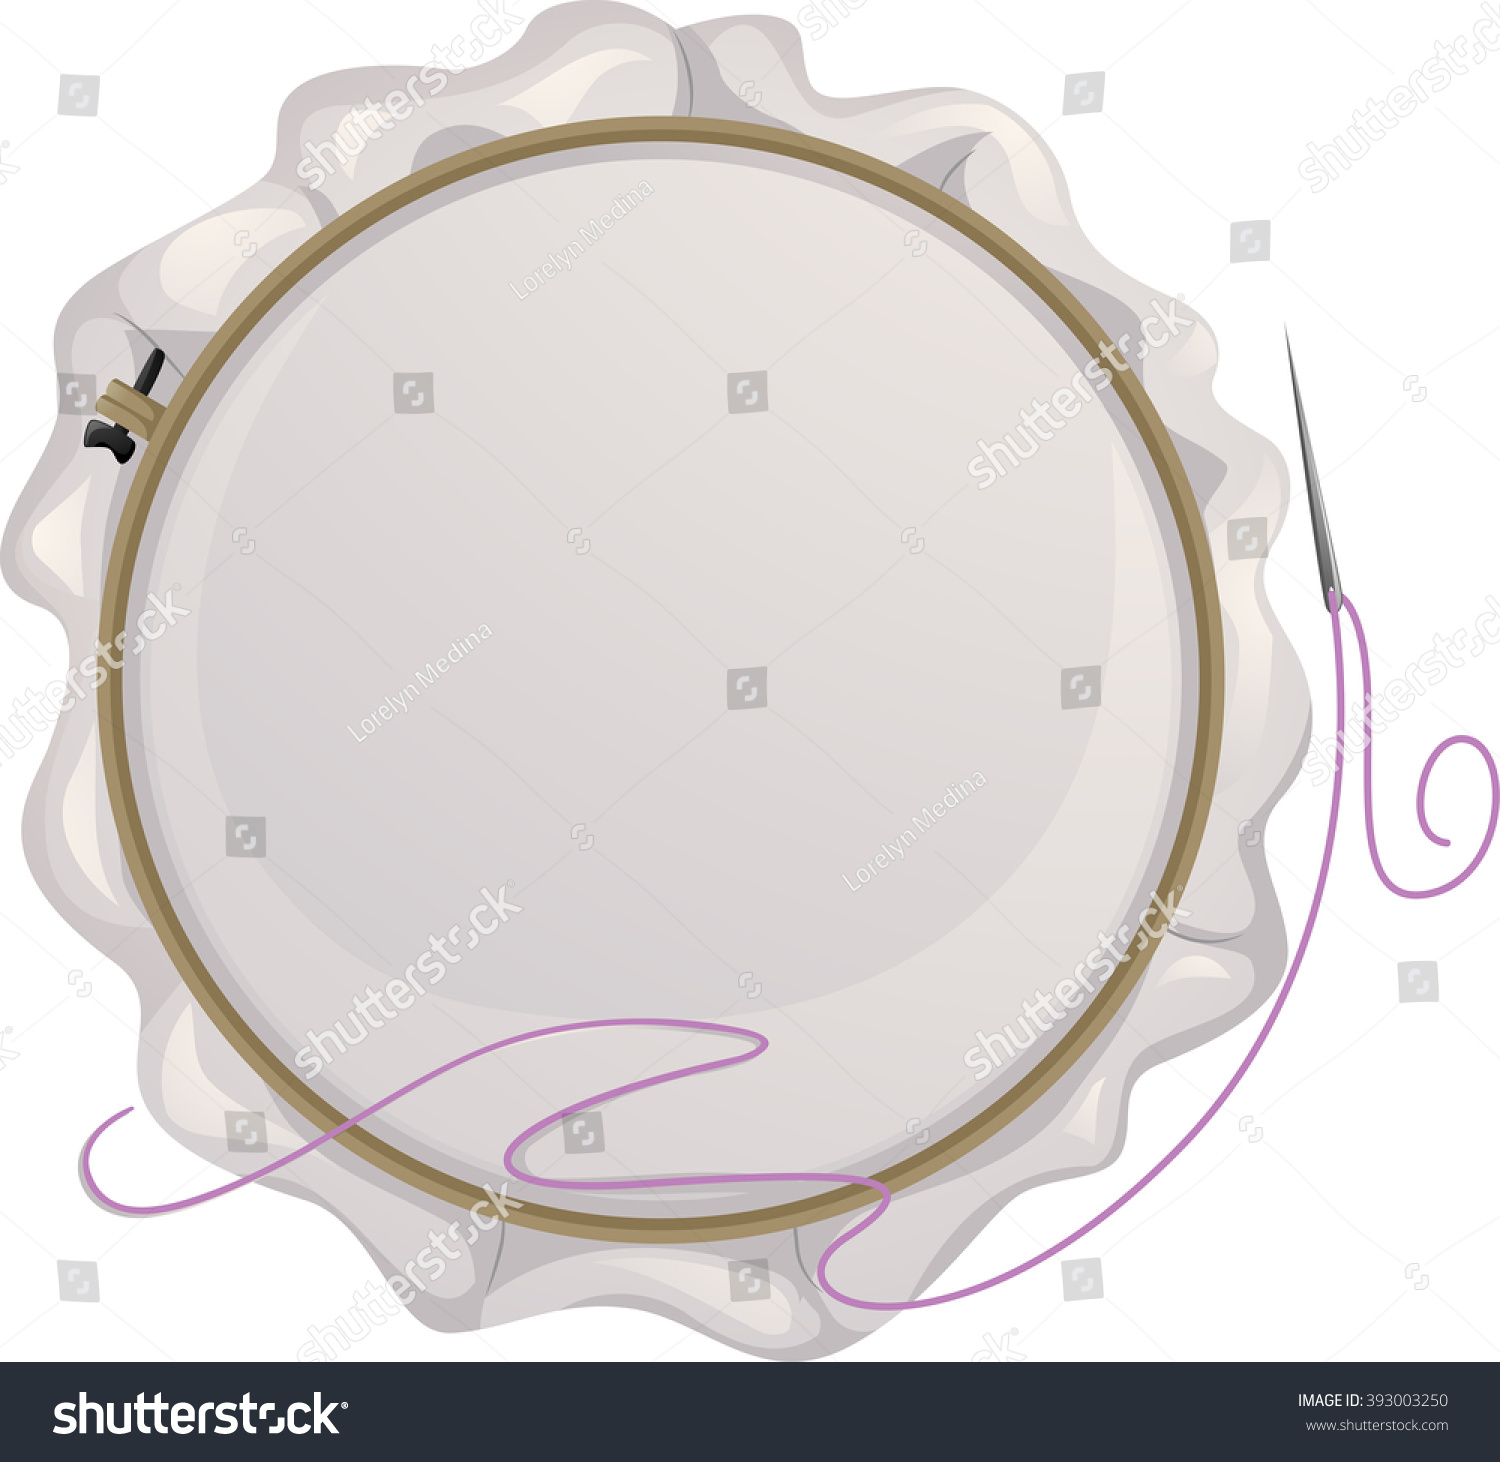 hight resolution of illustration of an embroidery hoop with a needle beside it